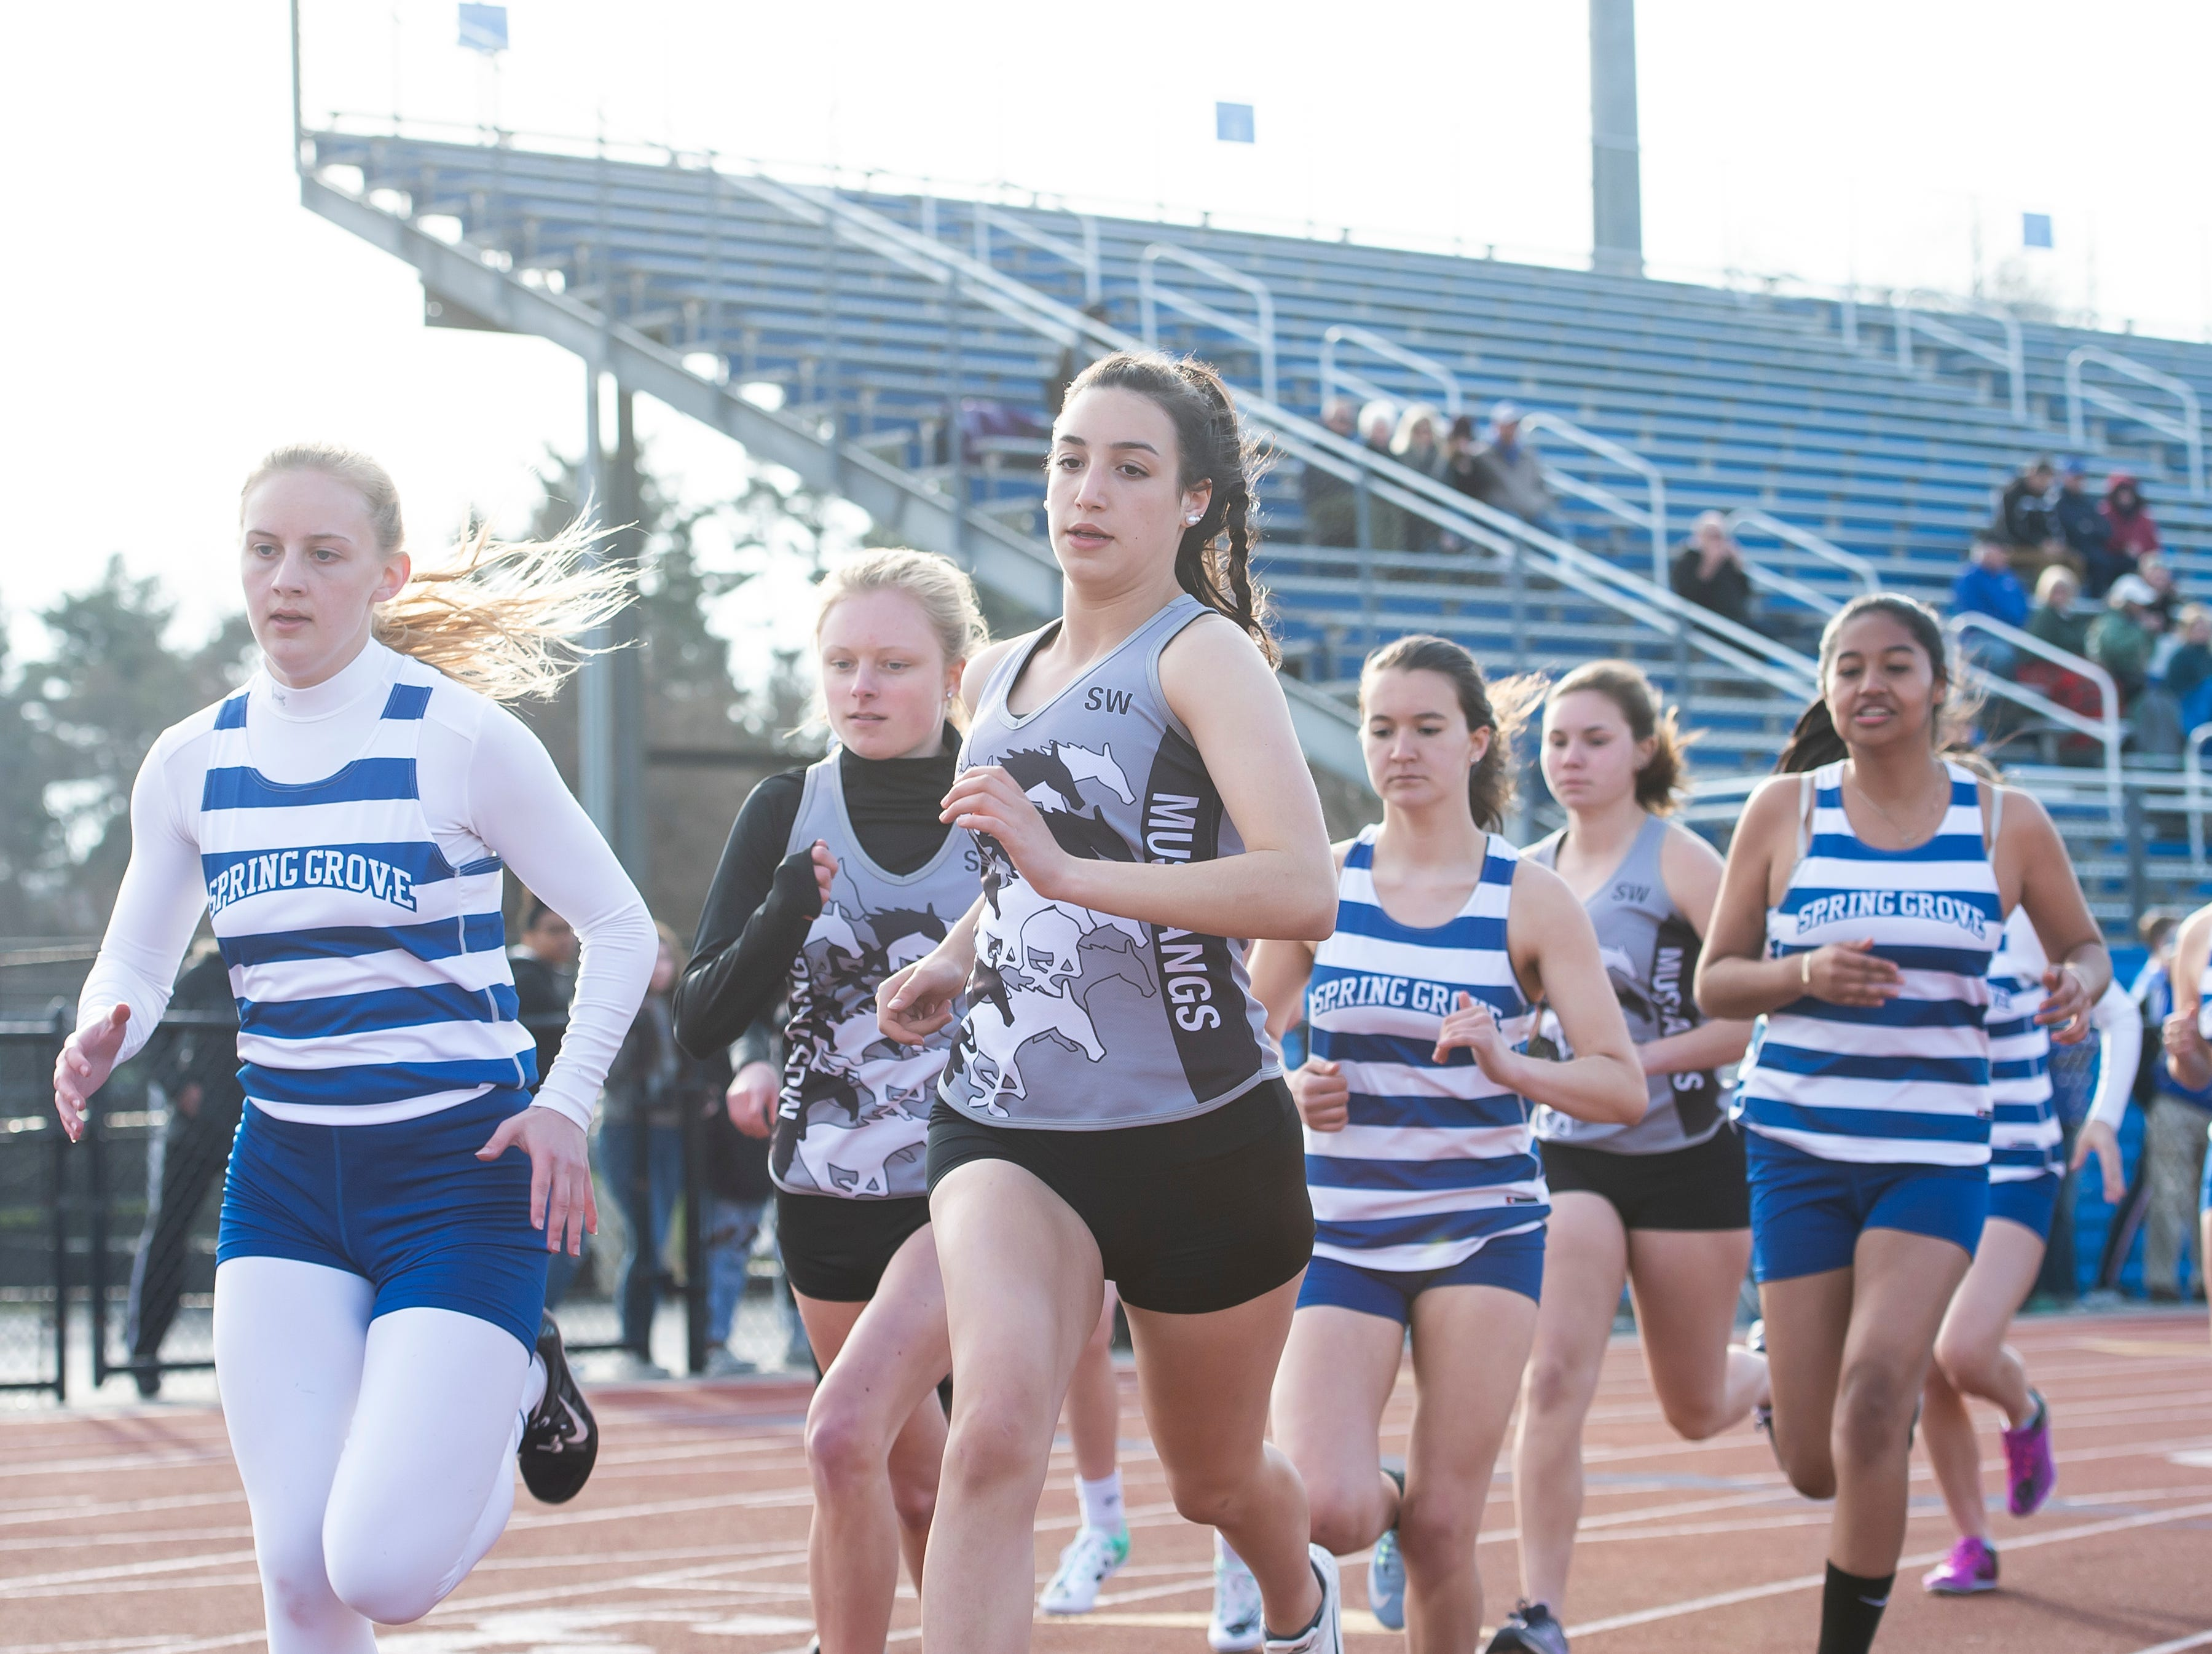 Spring Grove and South Western competitors take off in the 800m run on Thursday, April 11, 2019.